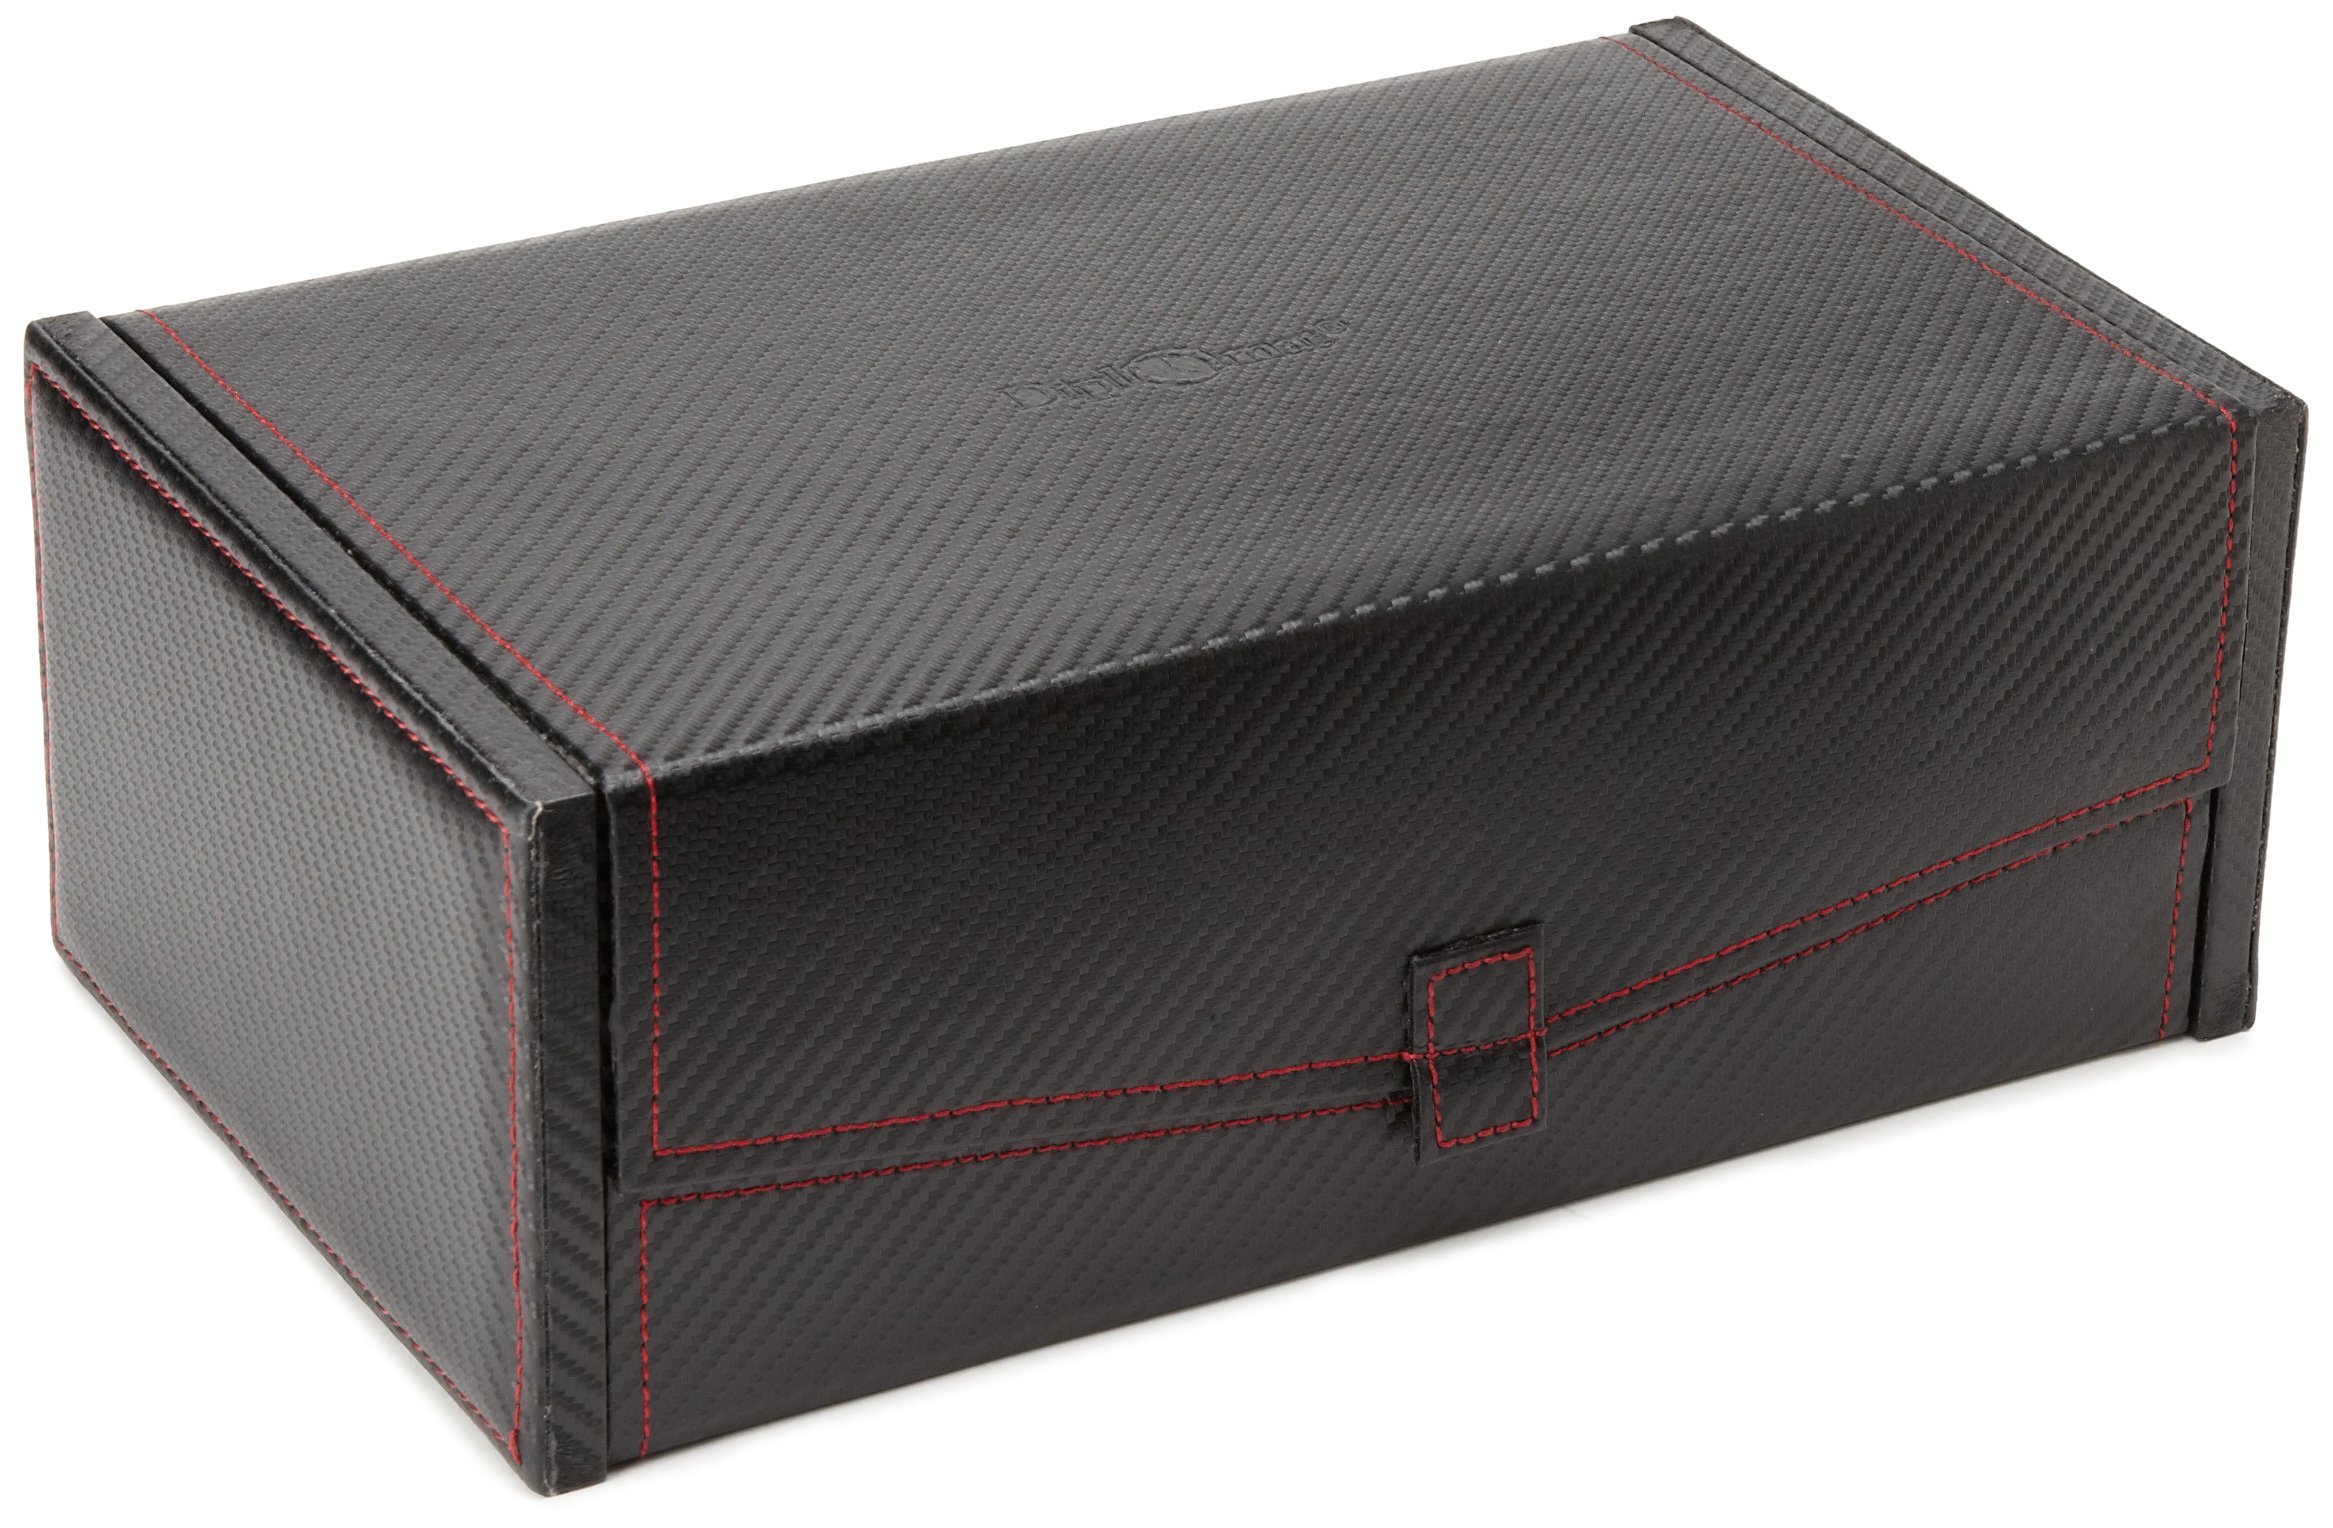 Diplomat 31-444 Carbon Fiber Ten Watch Case with Black Suede Interior and 2 Storage Compartments  Watch Case